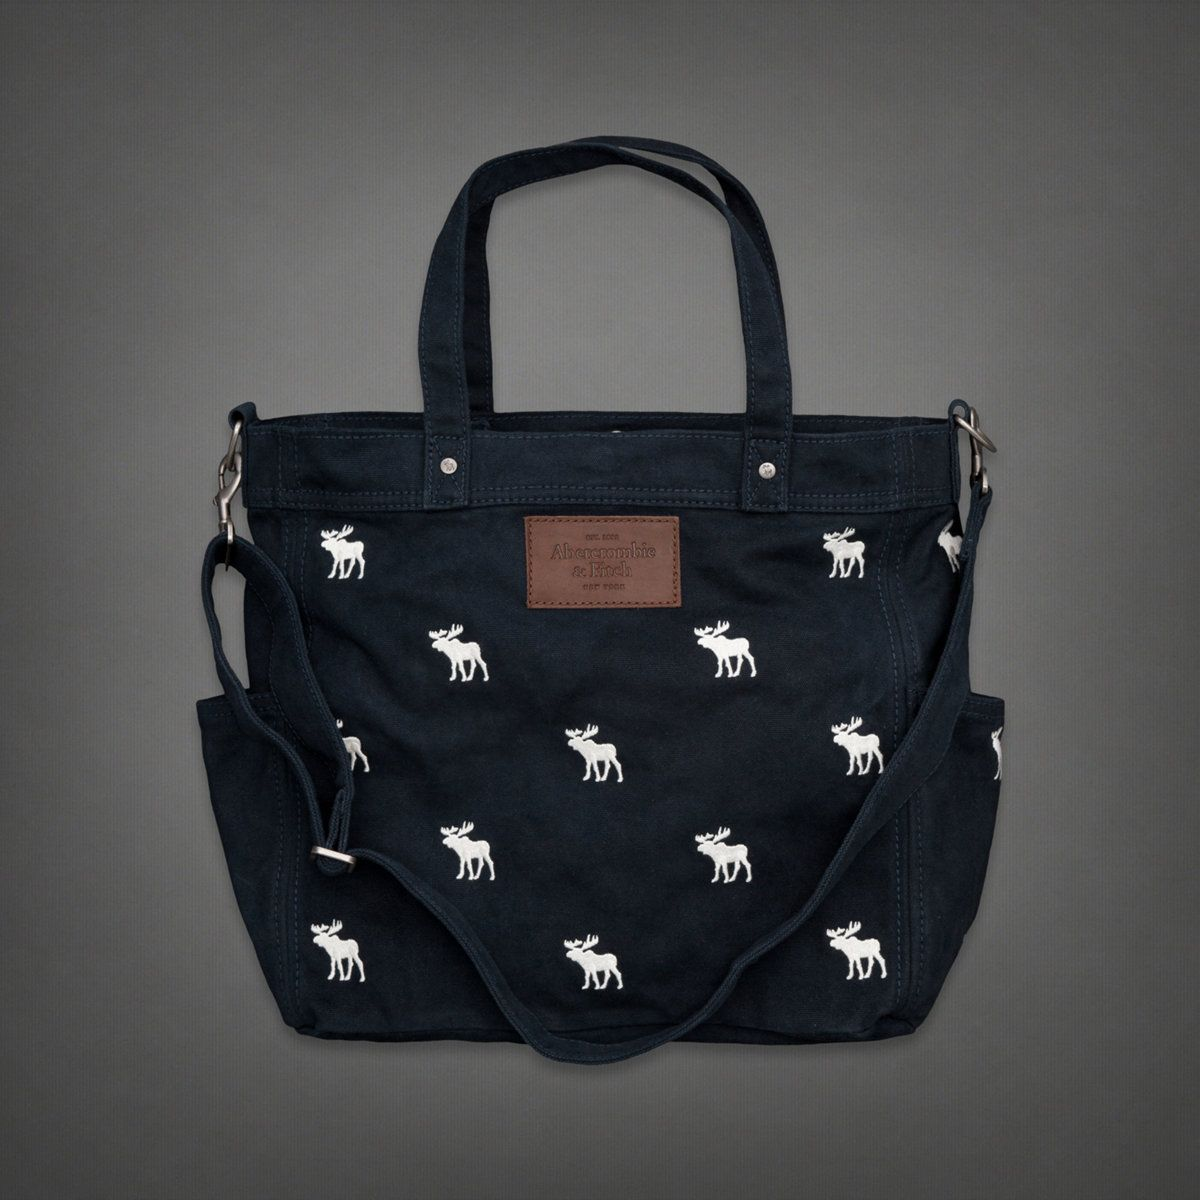 76a95adc6d7 Womens Iconic Logo Tote | Womens Accessories | Abercrombie.com ...